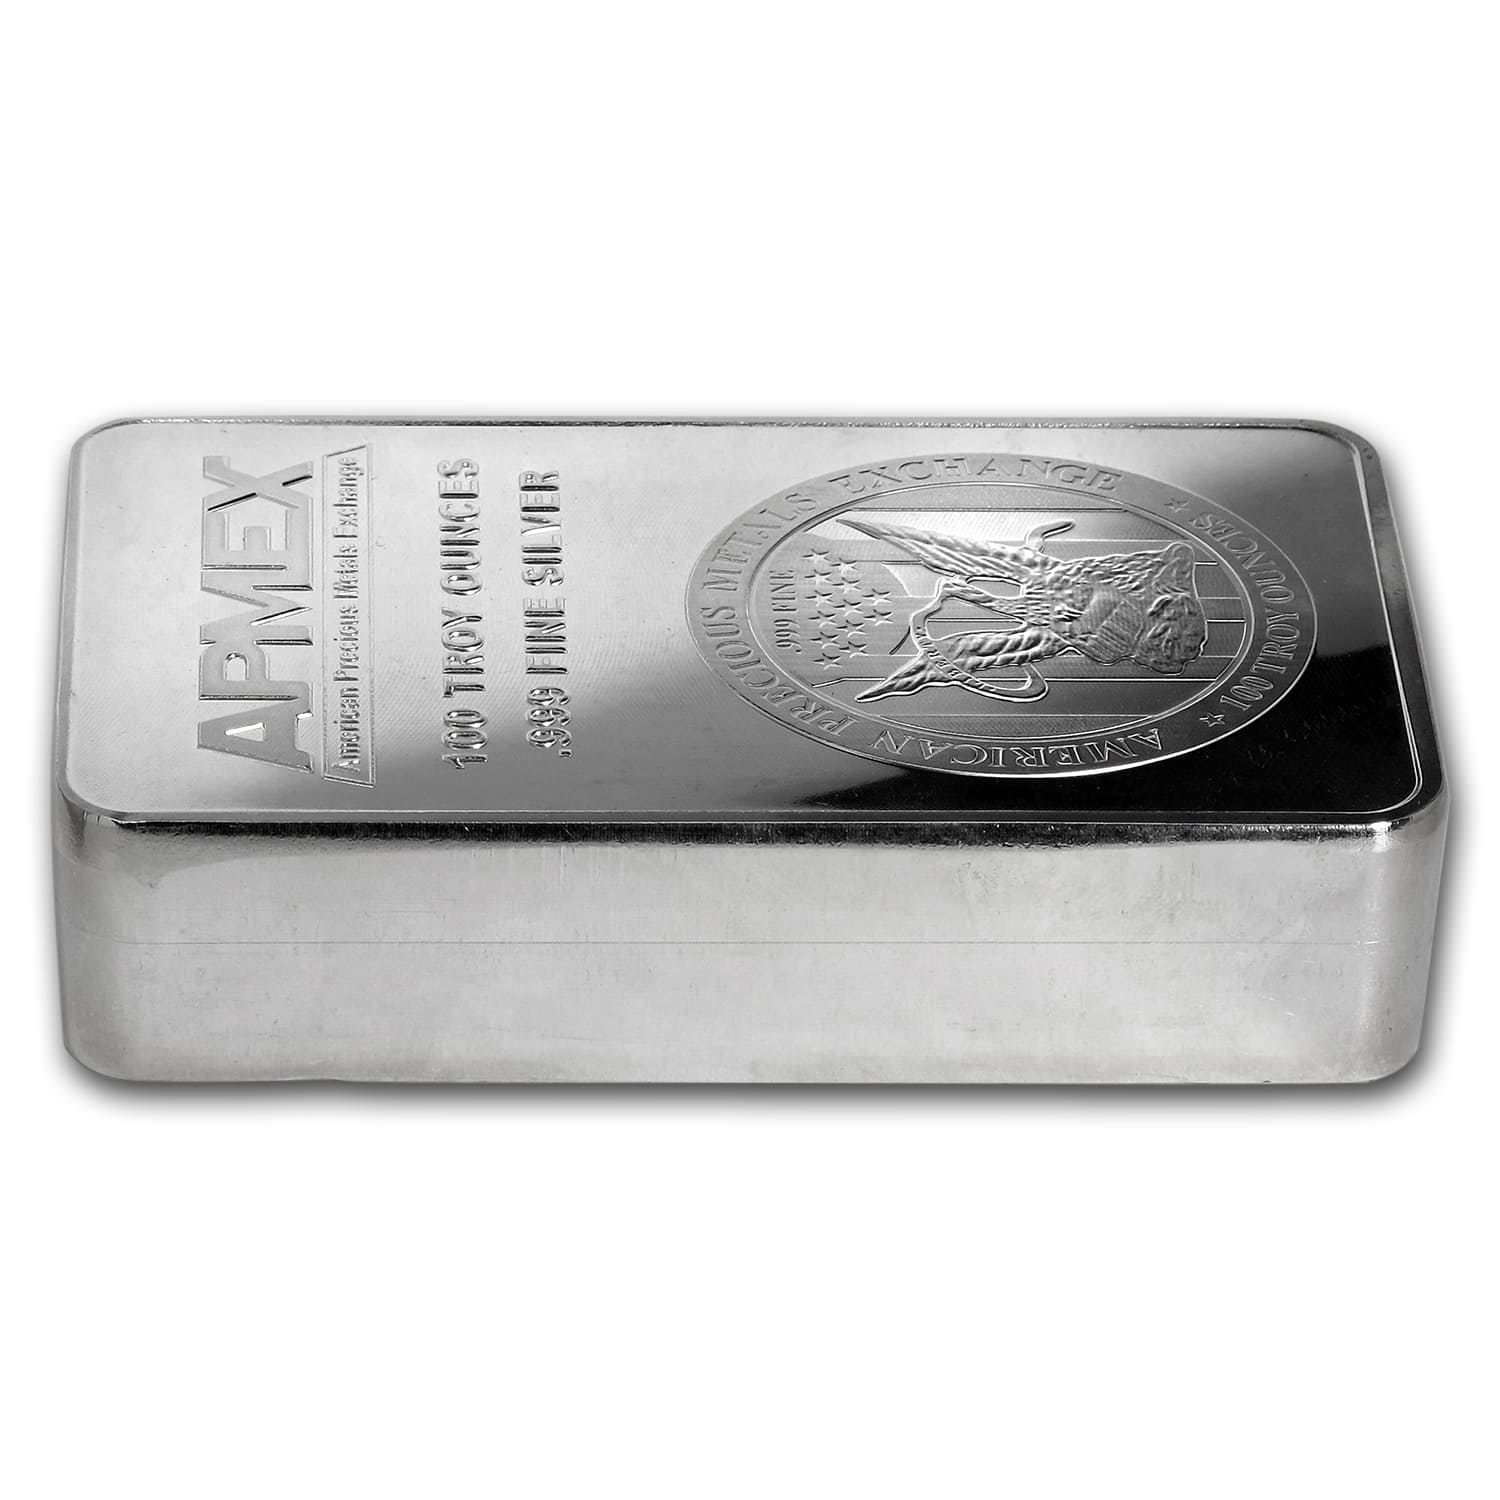 100 oz Silver Bar - APMEX (Struck) (Aug 21st)